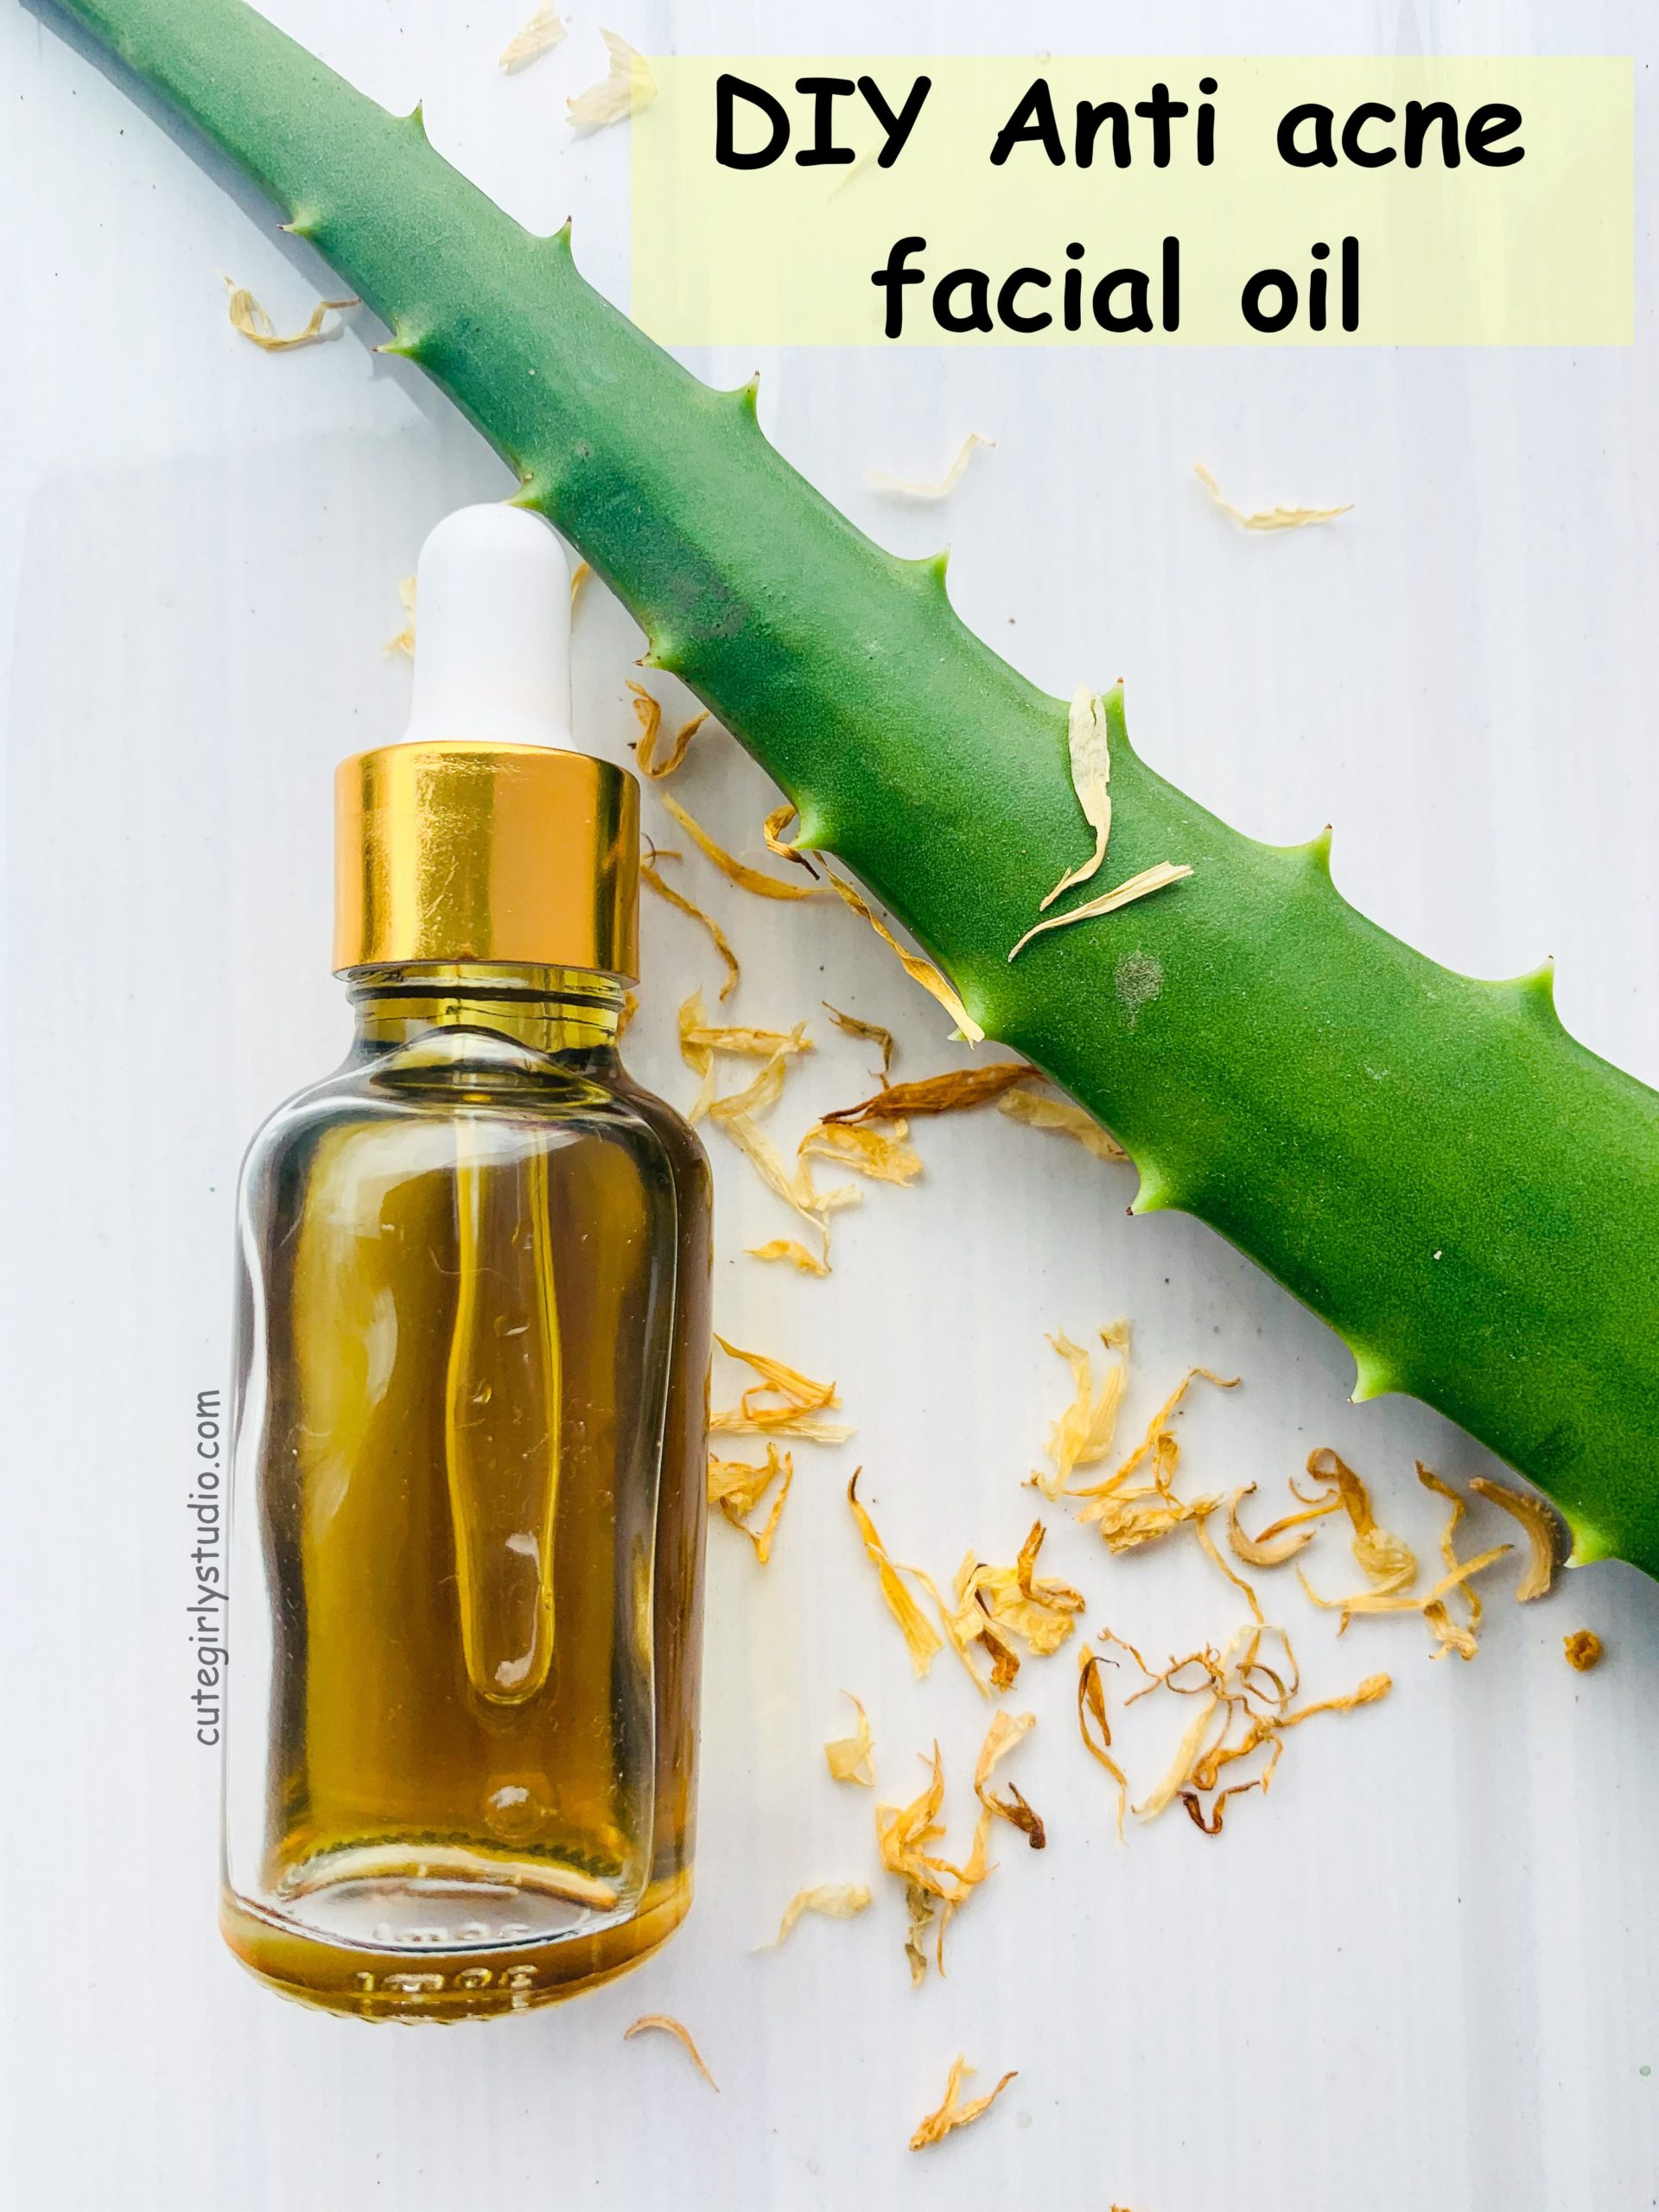 DIY ani acne facial oil